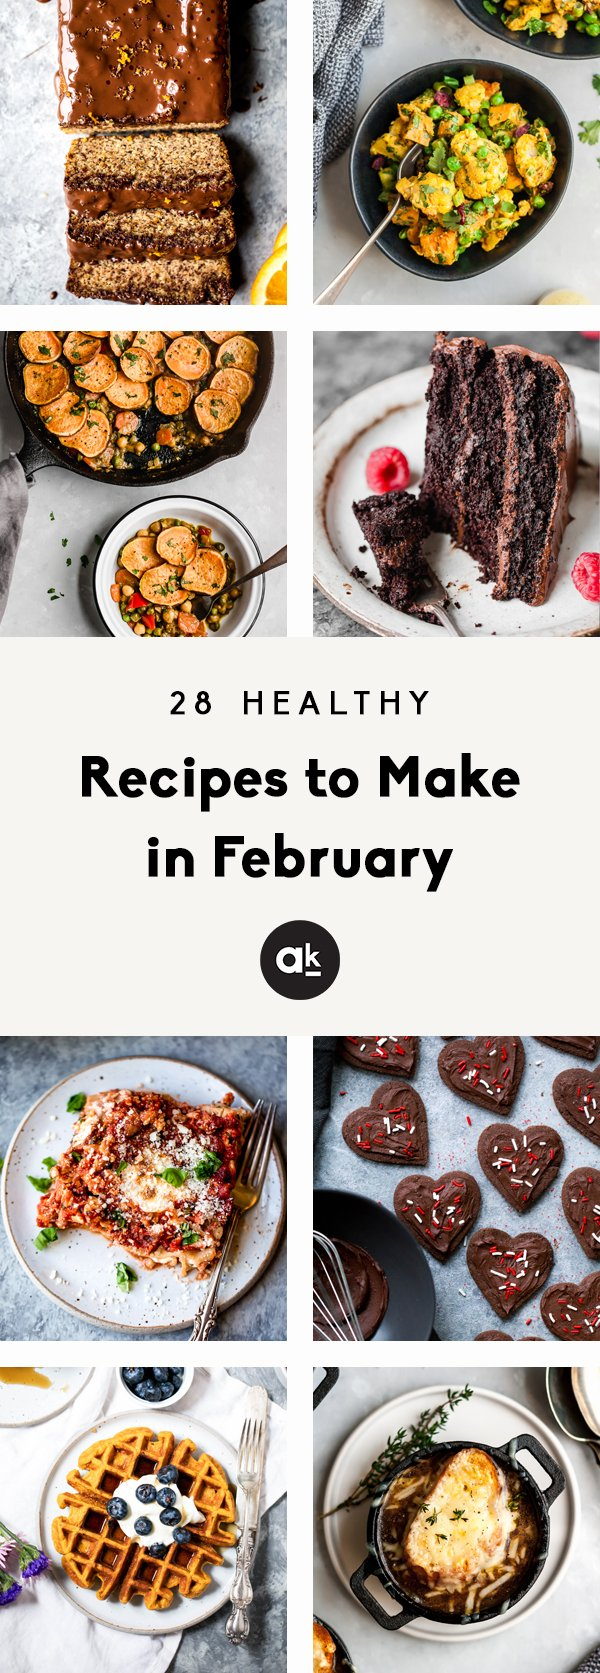 28 of the best healthy recipes to make in February! Enjoy sweet & savory breakfasts, delicious, filling lunches & dinners, and amazing chocolatey desserts.